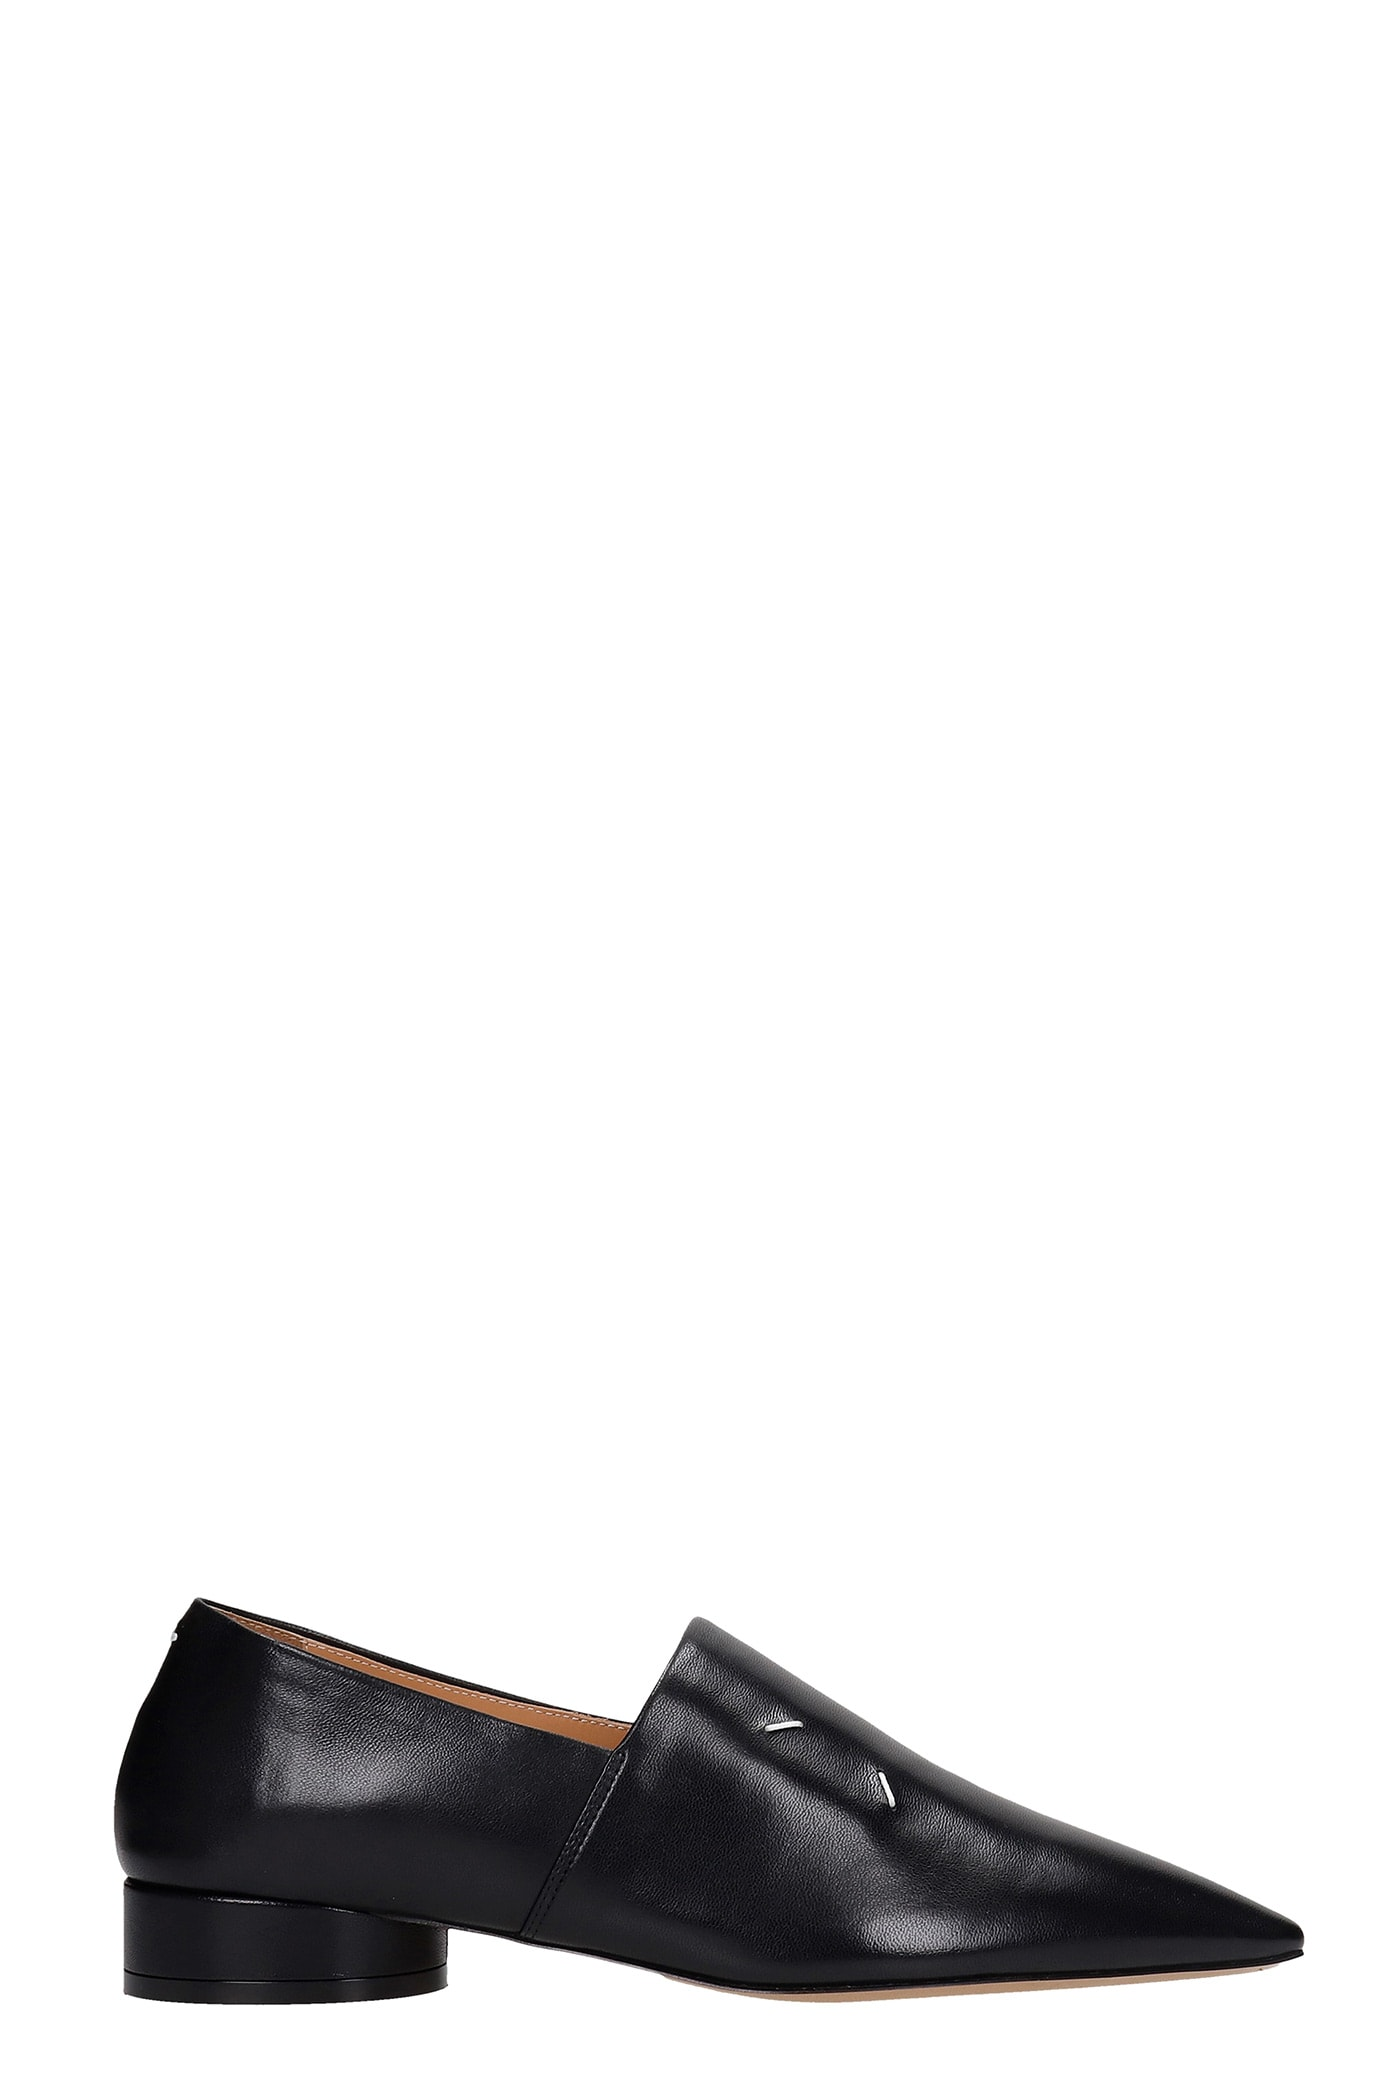 Buy Maison Margiela Loafers In Black Leather online, shop Maison Margiela shoes with free shipping